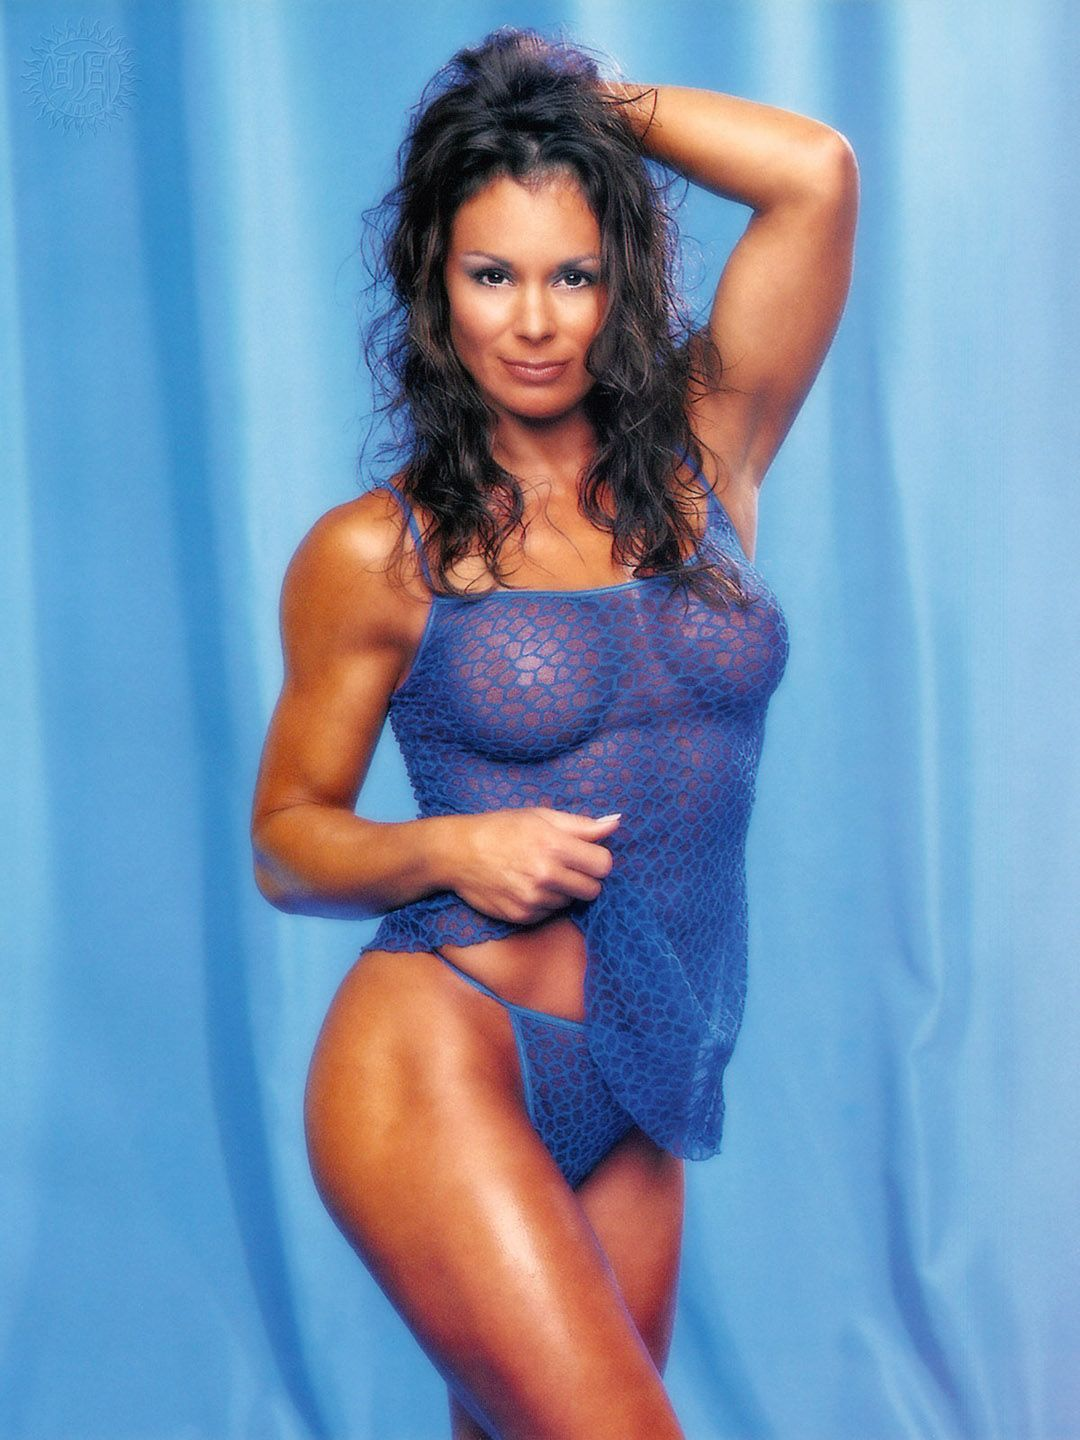 The Sexiest Photo Ever Of Ivory  Wwe Diva Ivory -The -3896